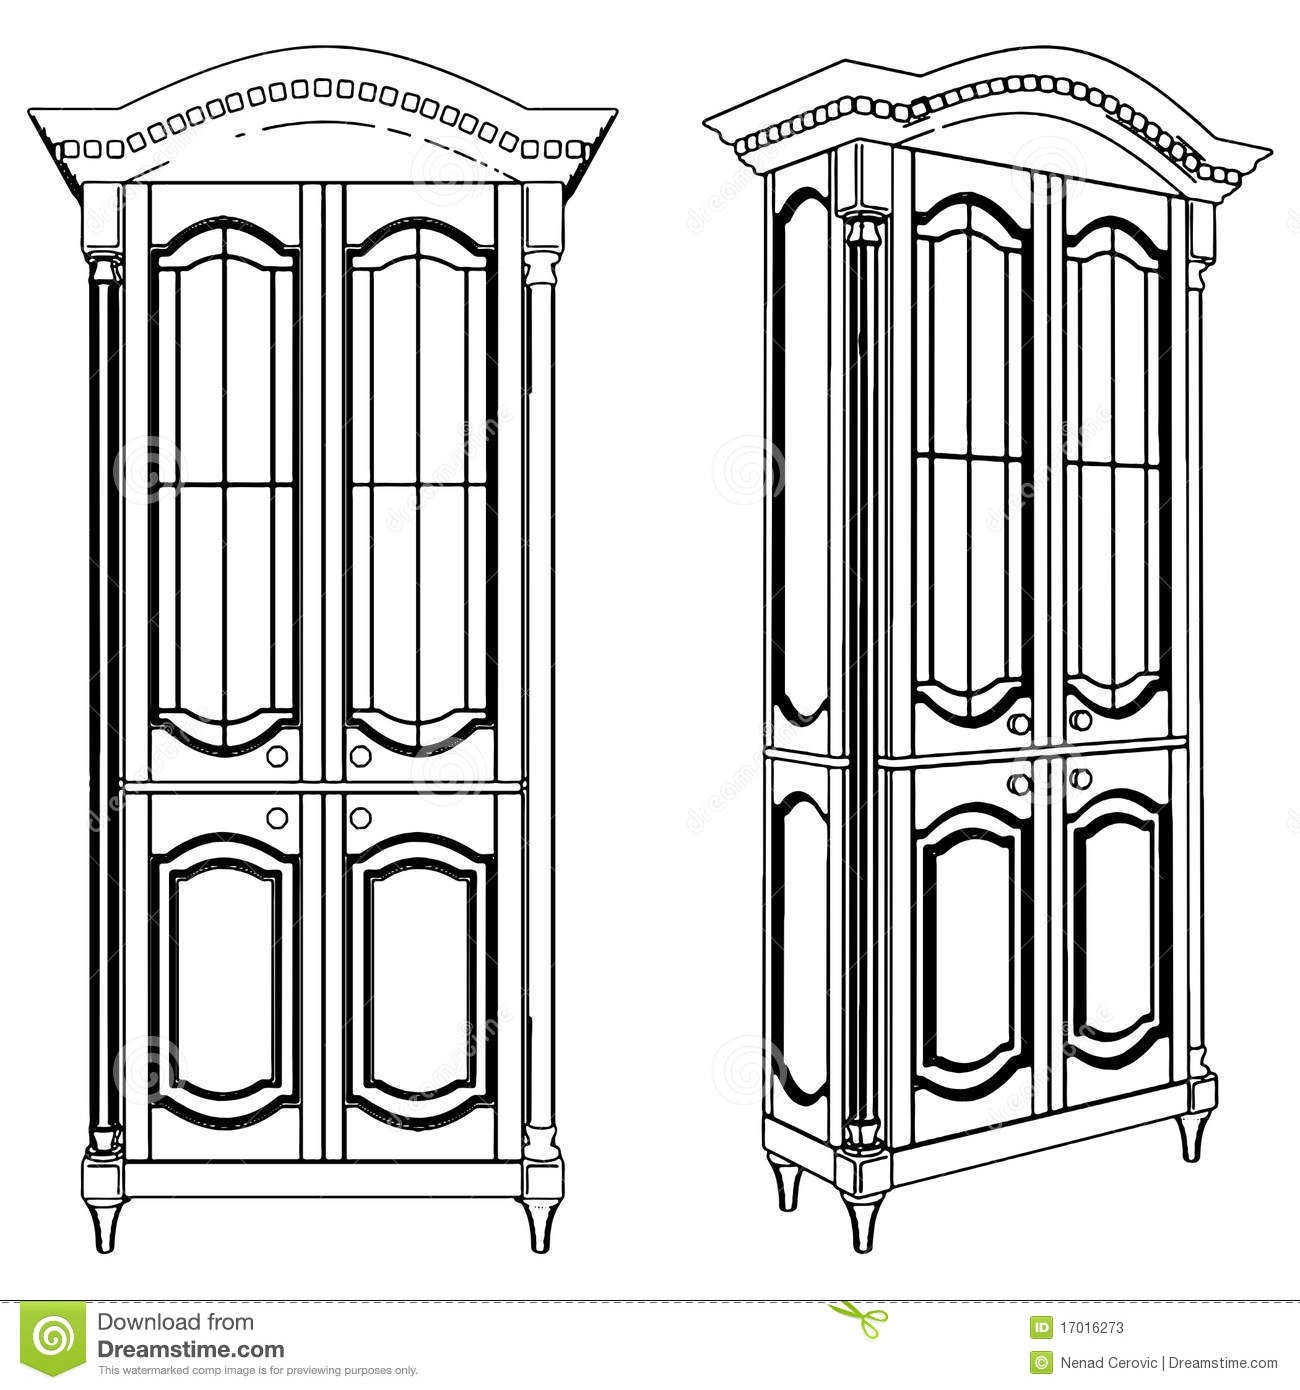 cupboard clipart black and white. cupboard illustration clipart black and white